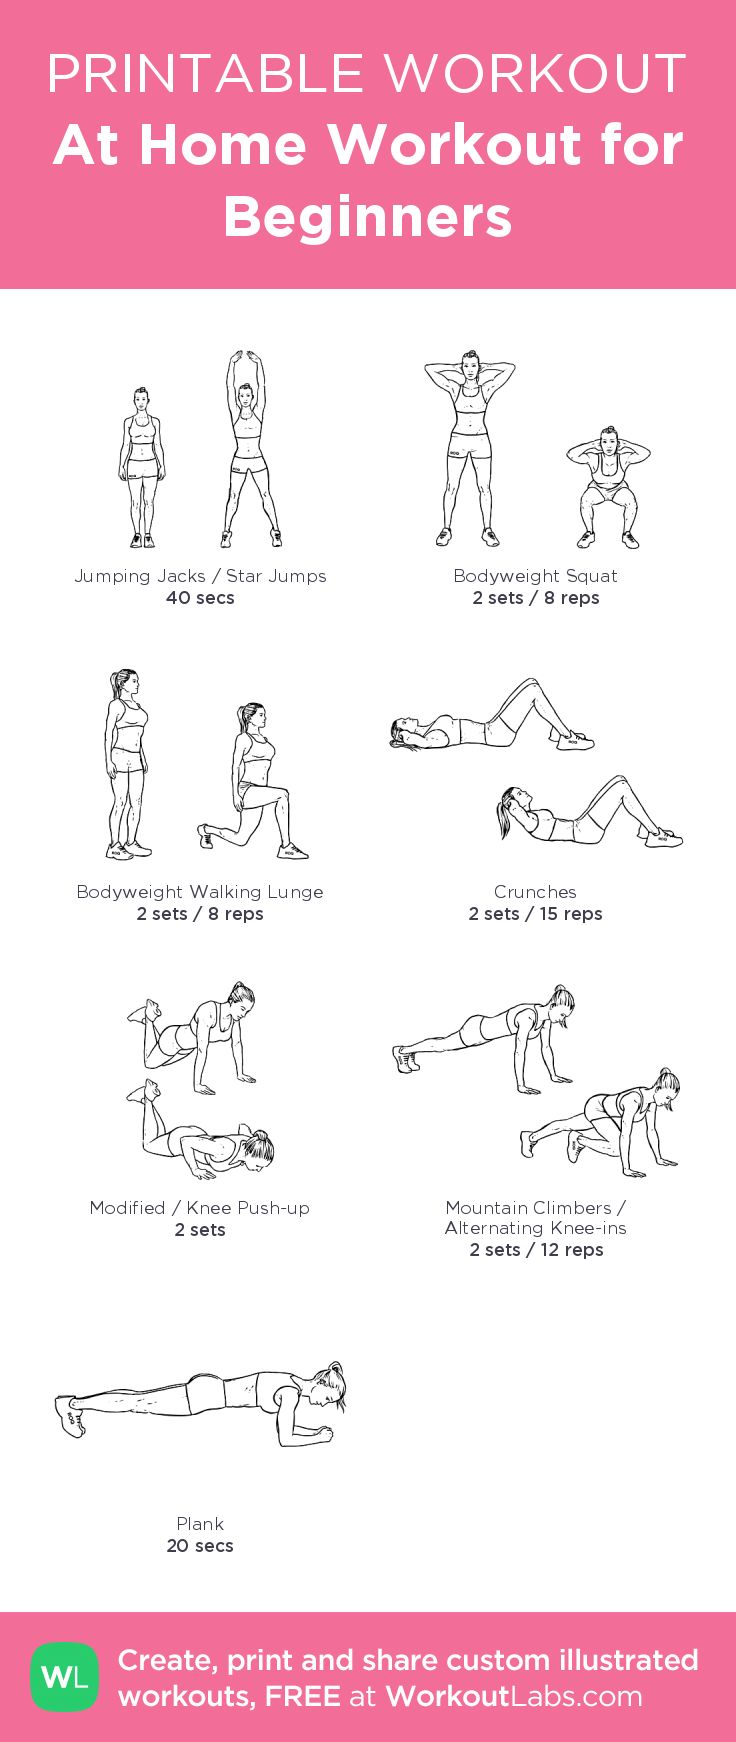 At Home Workout for Beginners– my custom exercise plan created at WorkoutLabs.com • Click through to download as a printable workout PDF #customworkout